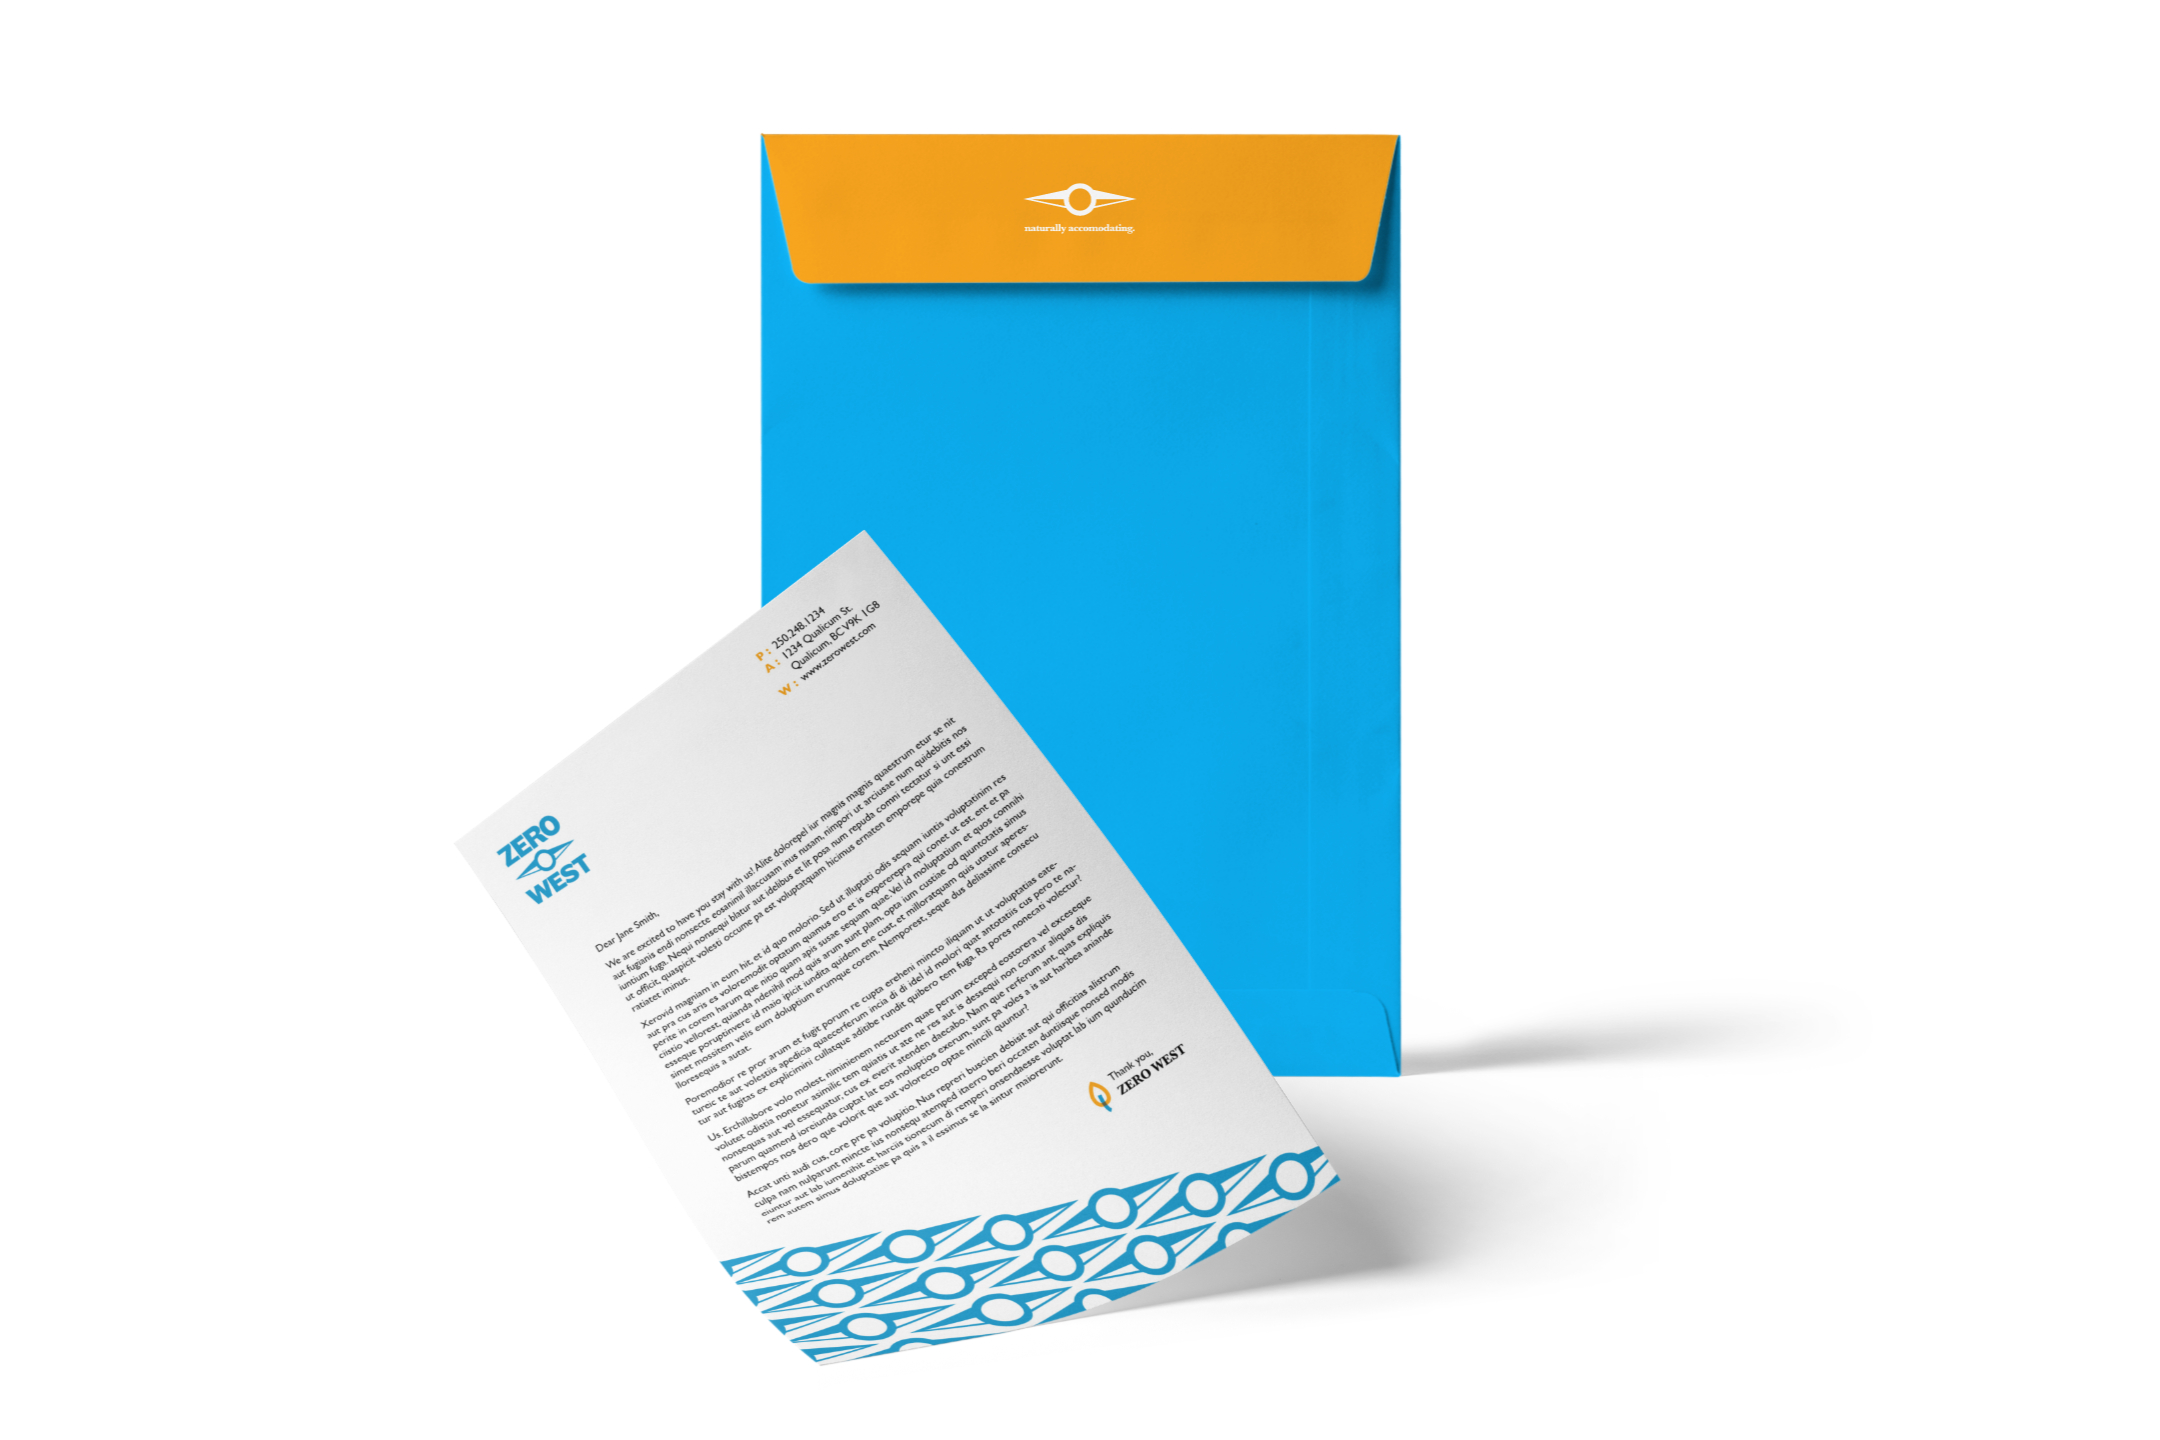 letterhead-and-envelope-colour@2x.jpeg